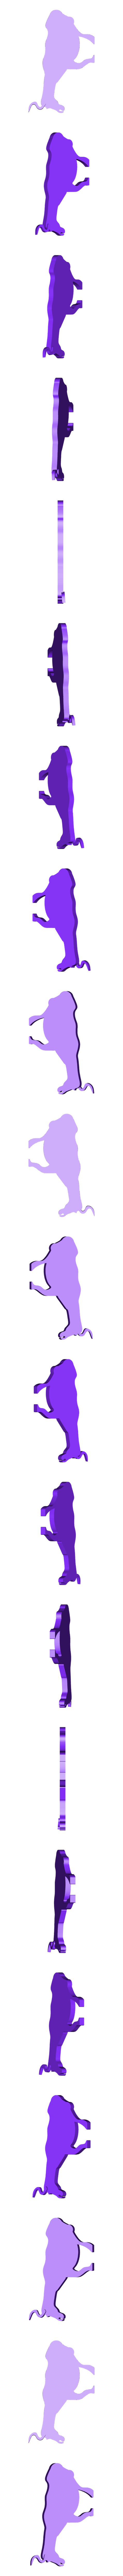 goat_side1.stl Download free STL file Palaeo Flats • 3D printing template, Earsling